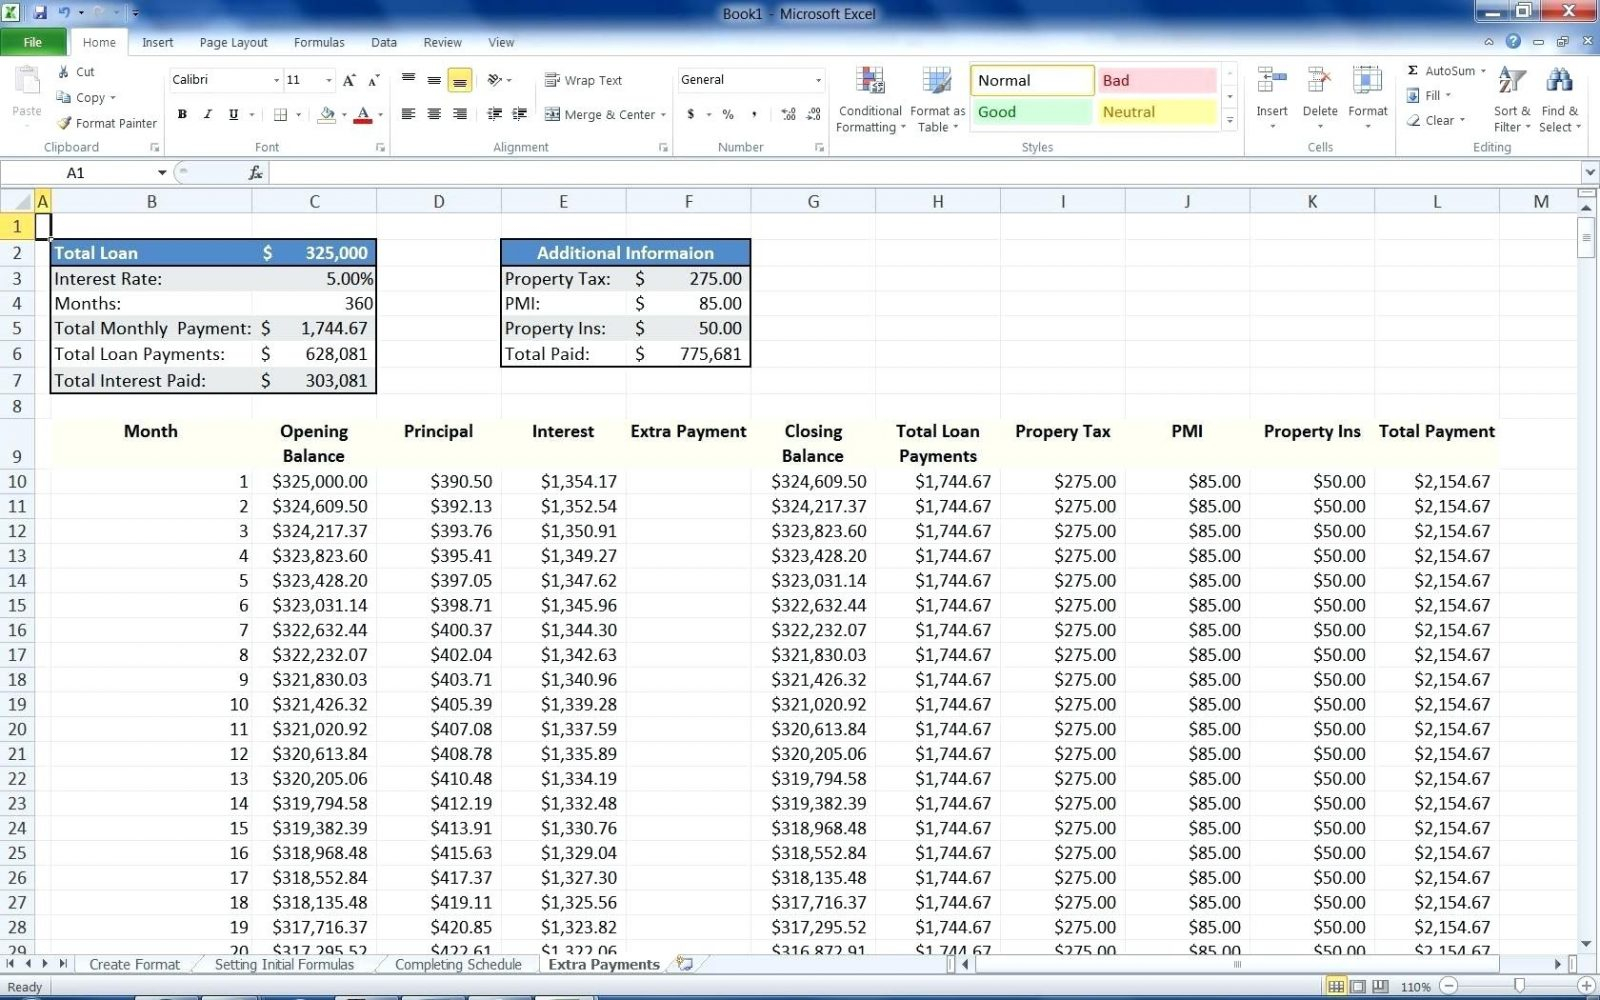 Mortgage Spreadsheet Formula Pertaining To Form Mortgage Spreadsheet Formula Examples Templatel Loan Calculator